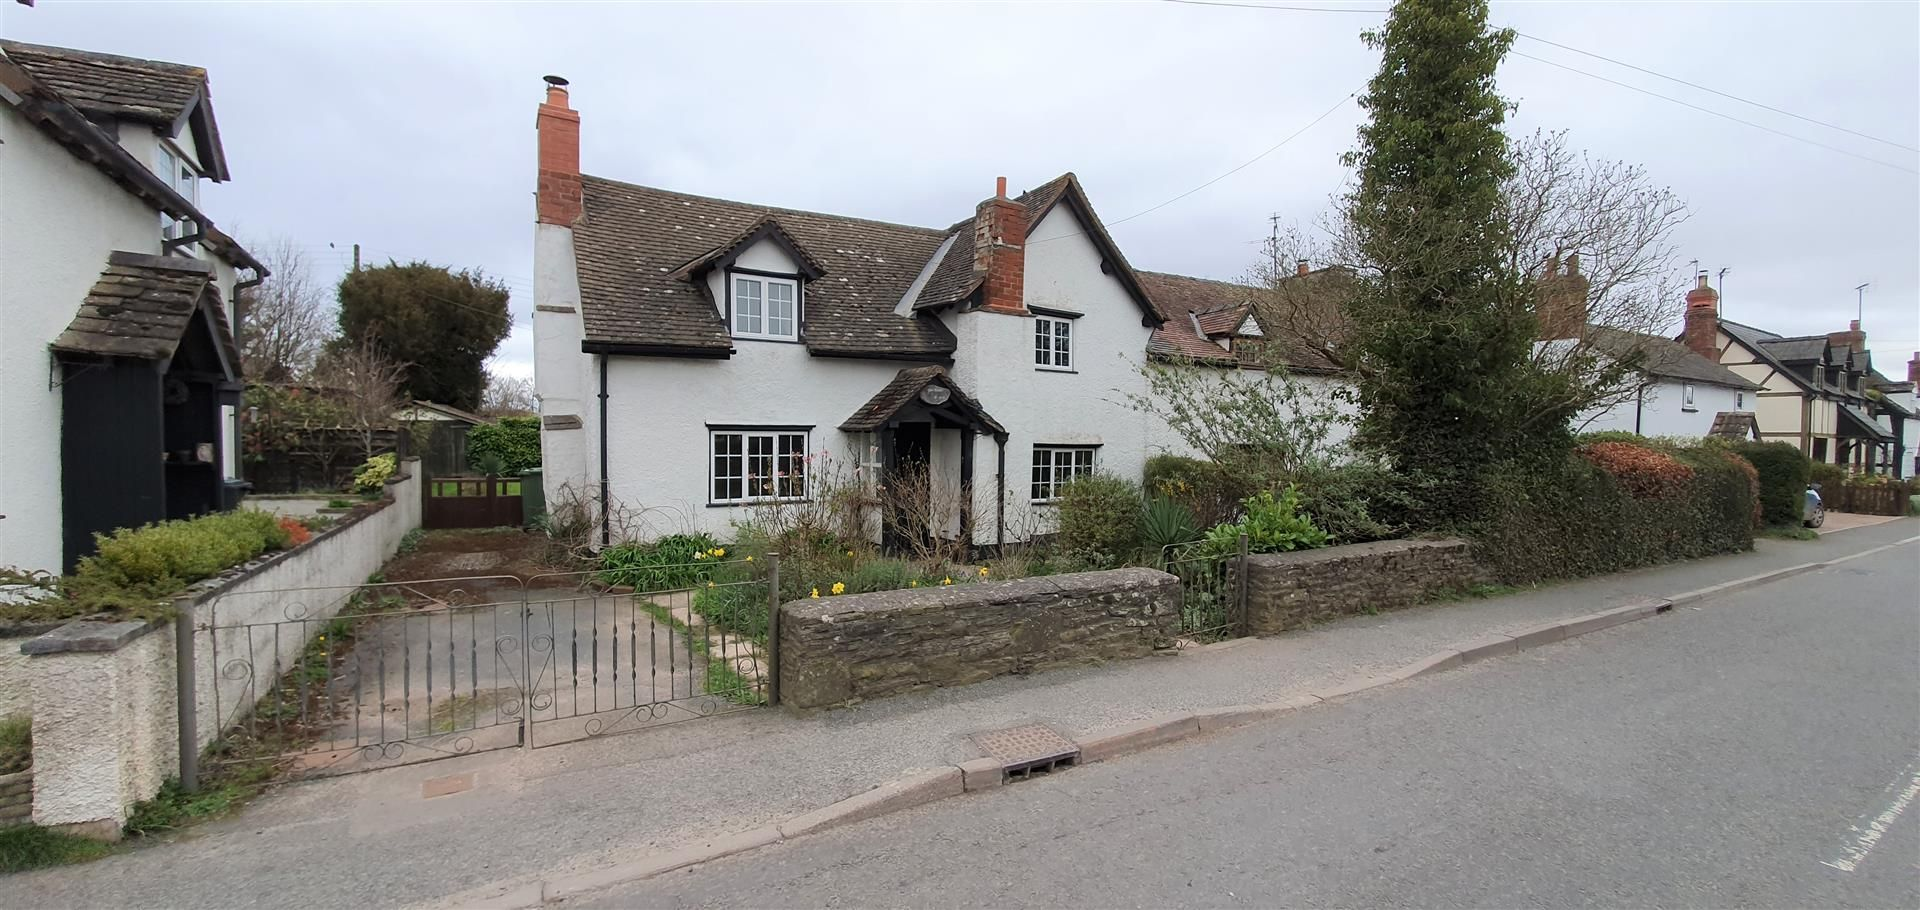 3 bed semi-detached for sale, HR3